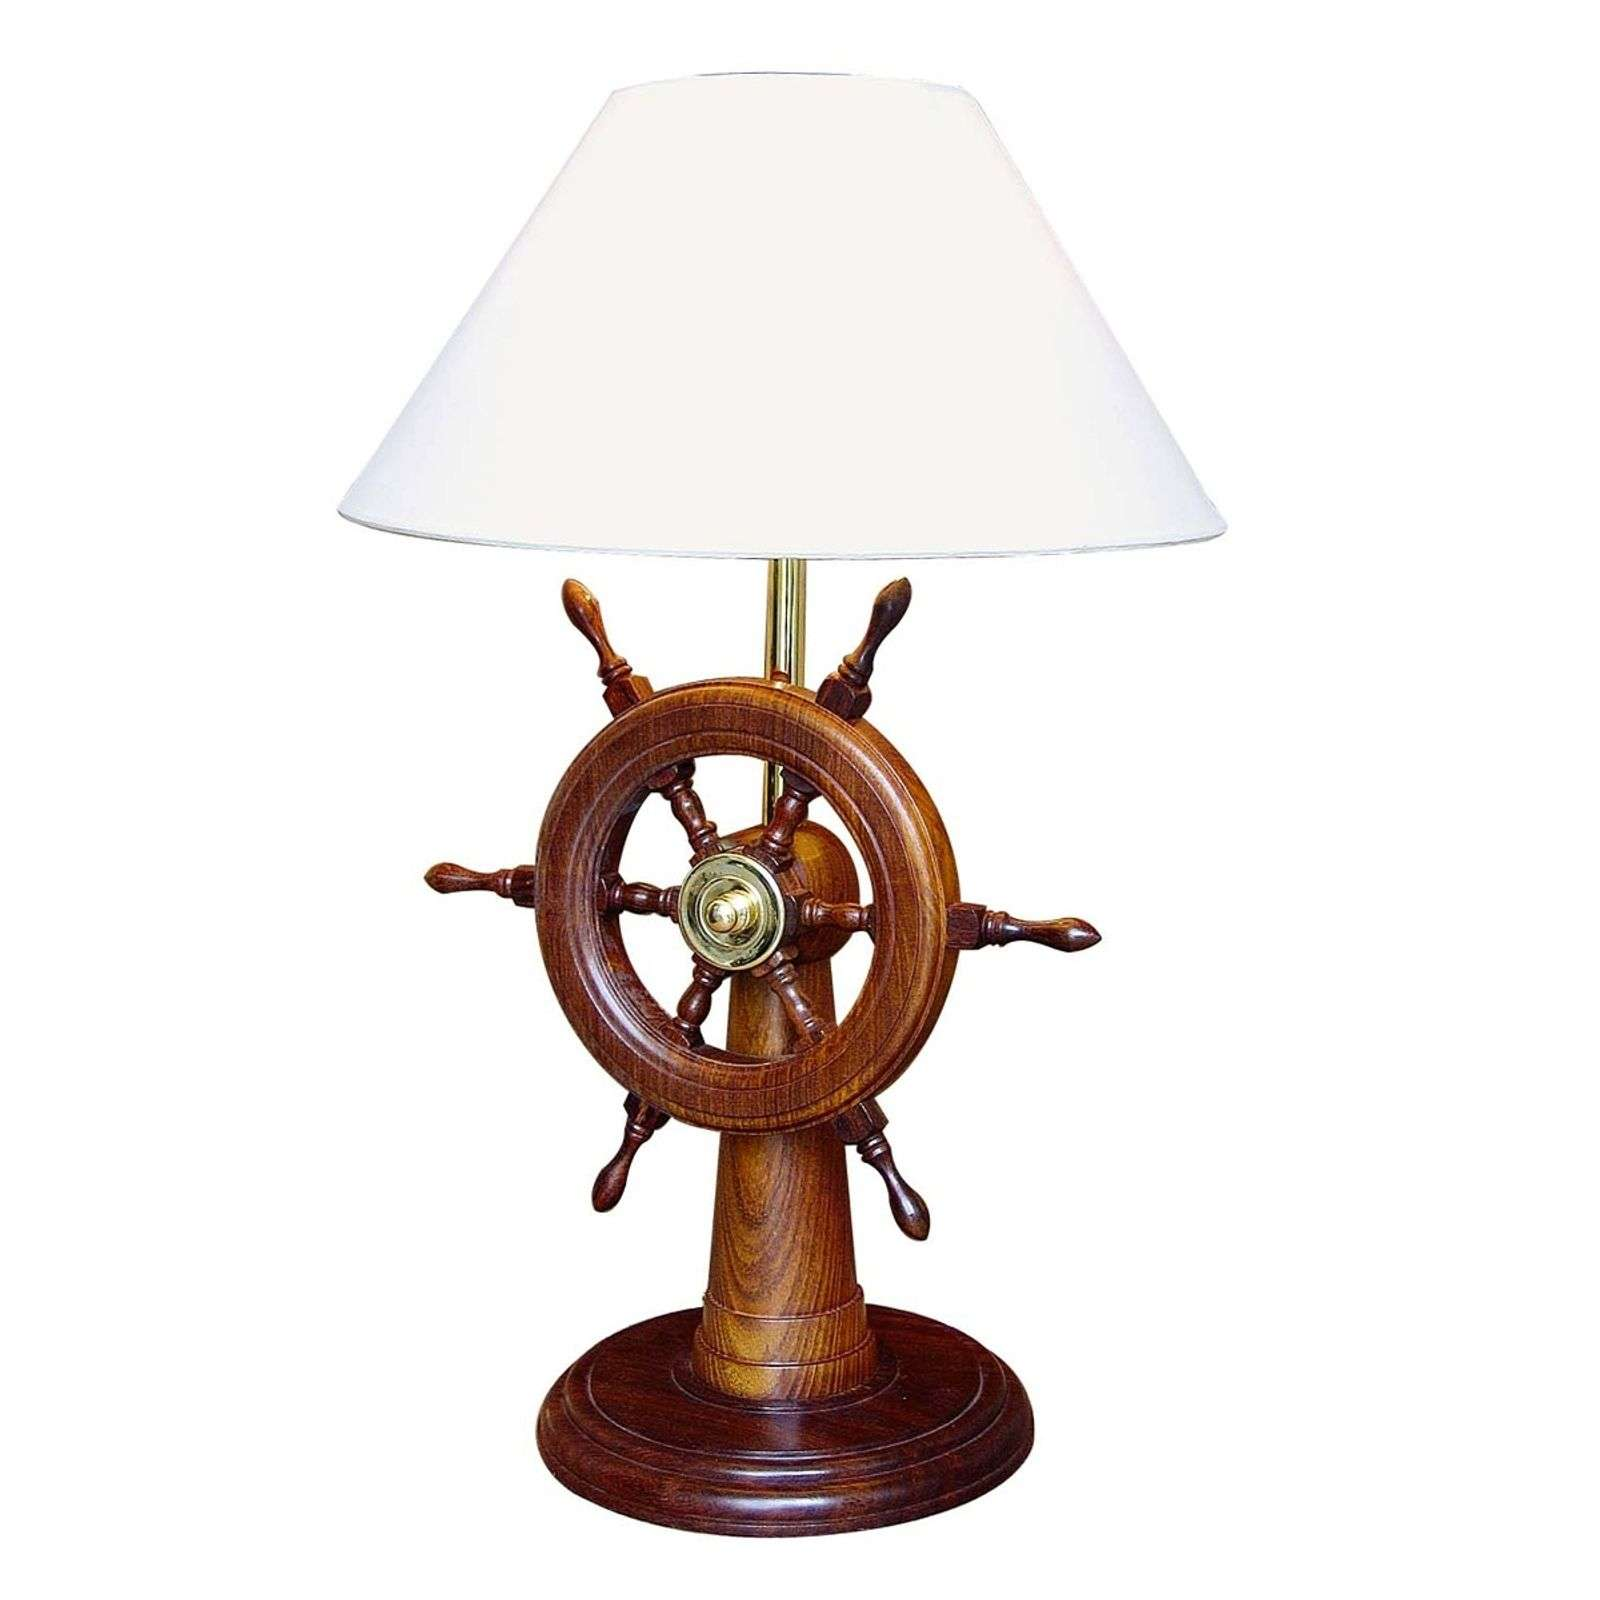 Remarquable lampe à poser HELMSTAND bois